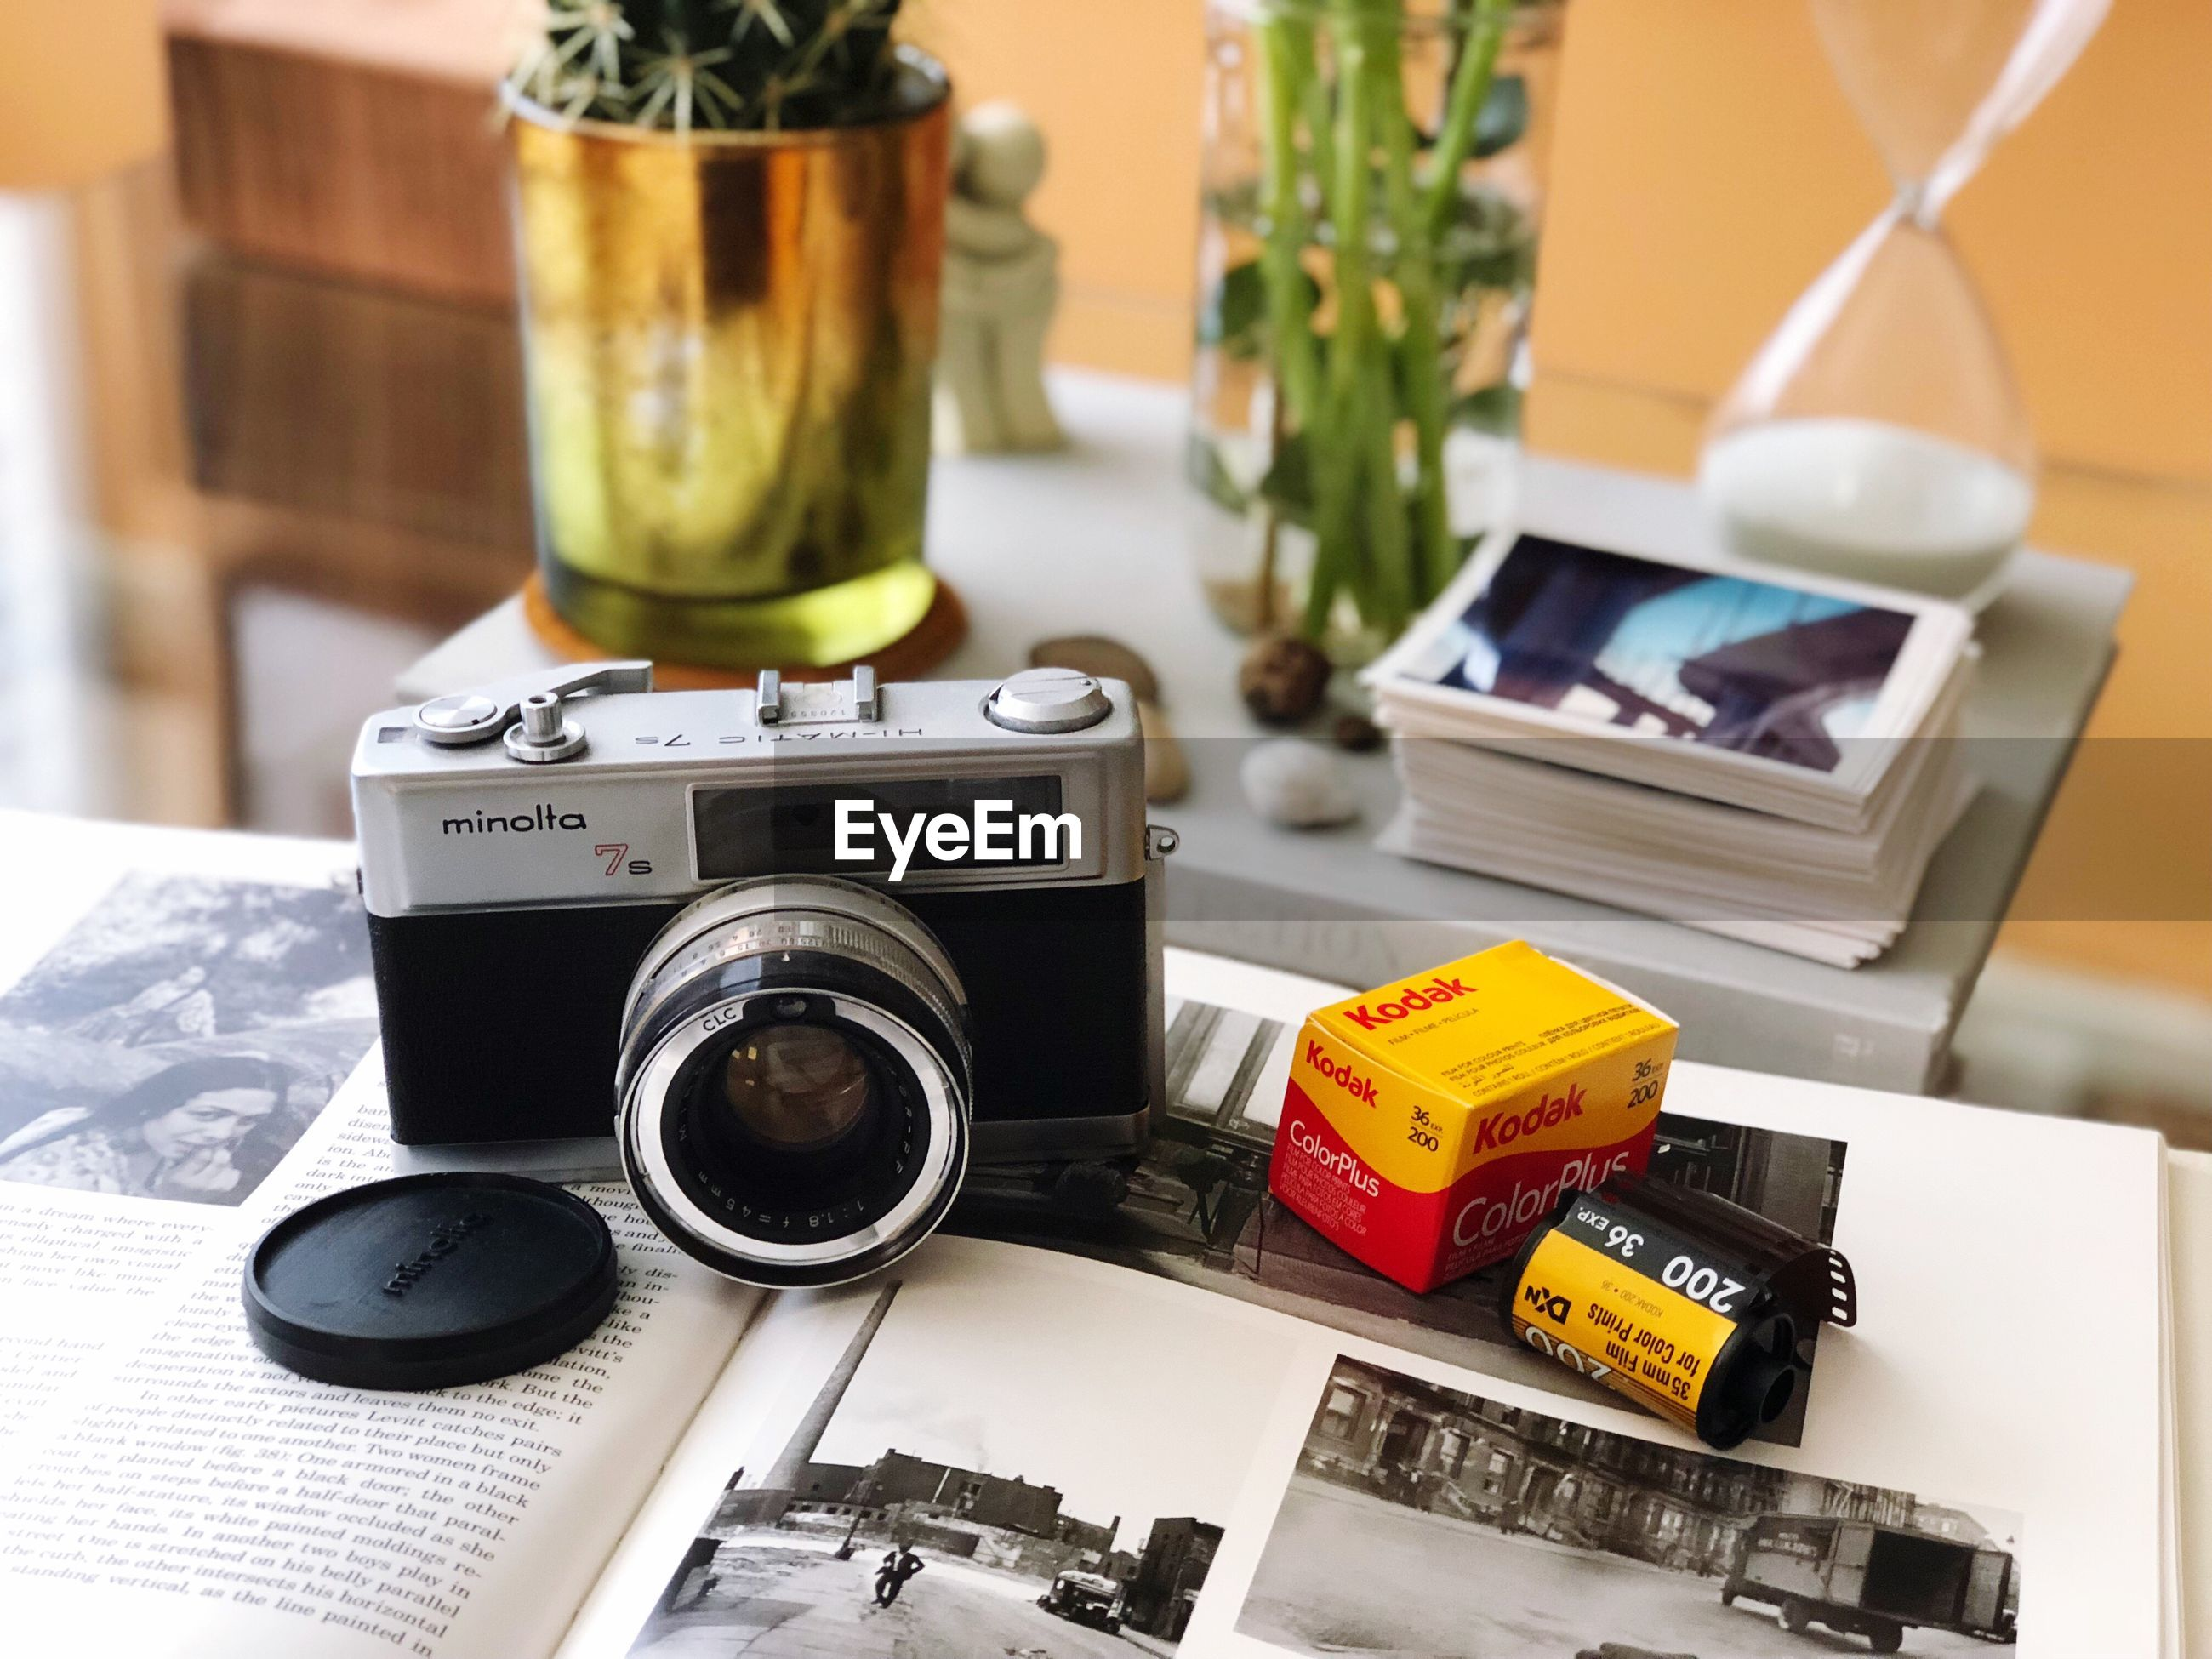 CLOSE-UP OF CAMERA AND BOOK ON TABLE